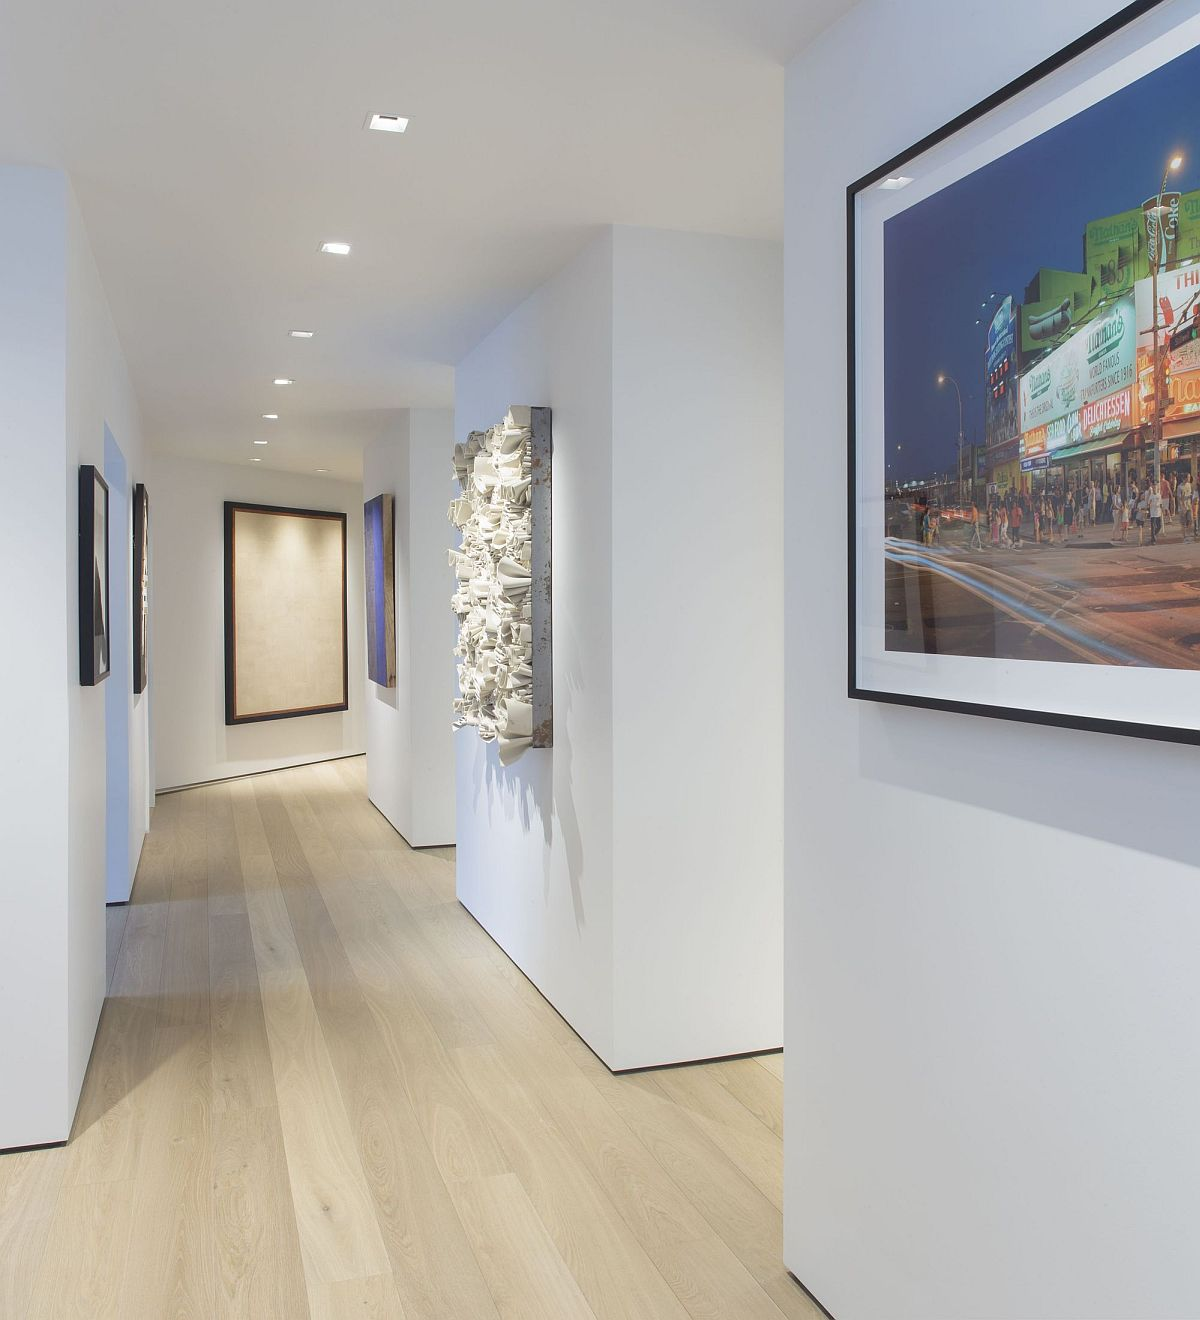 White walls in the hallways act as a gallery-style setting for the art work to be displayed